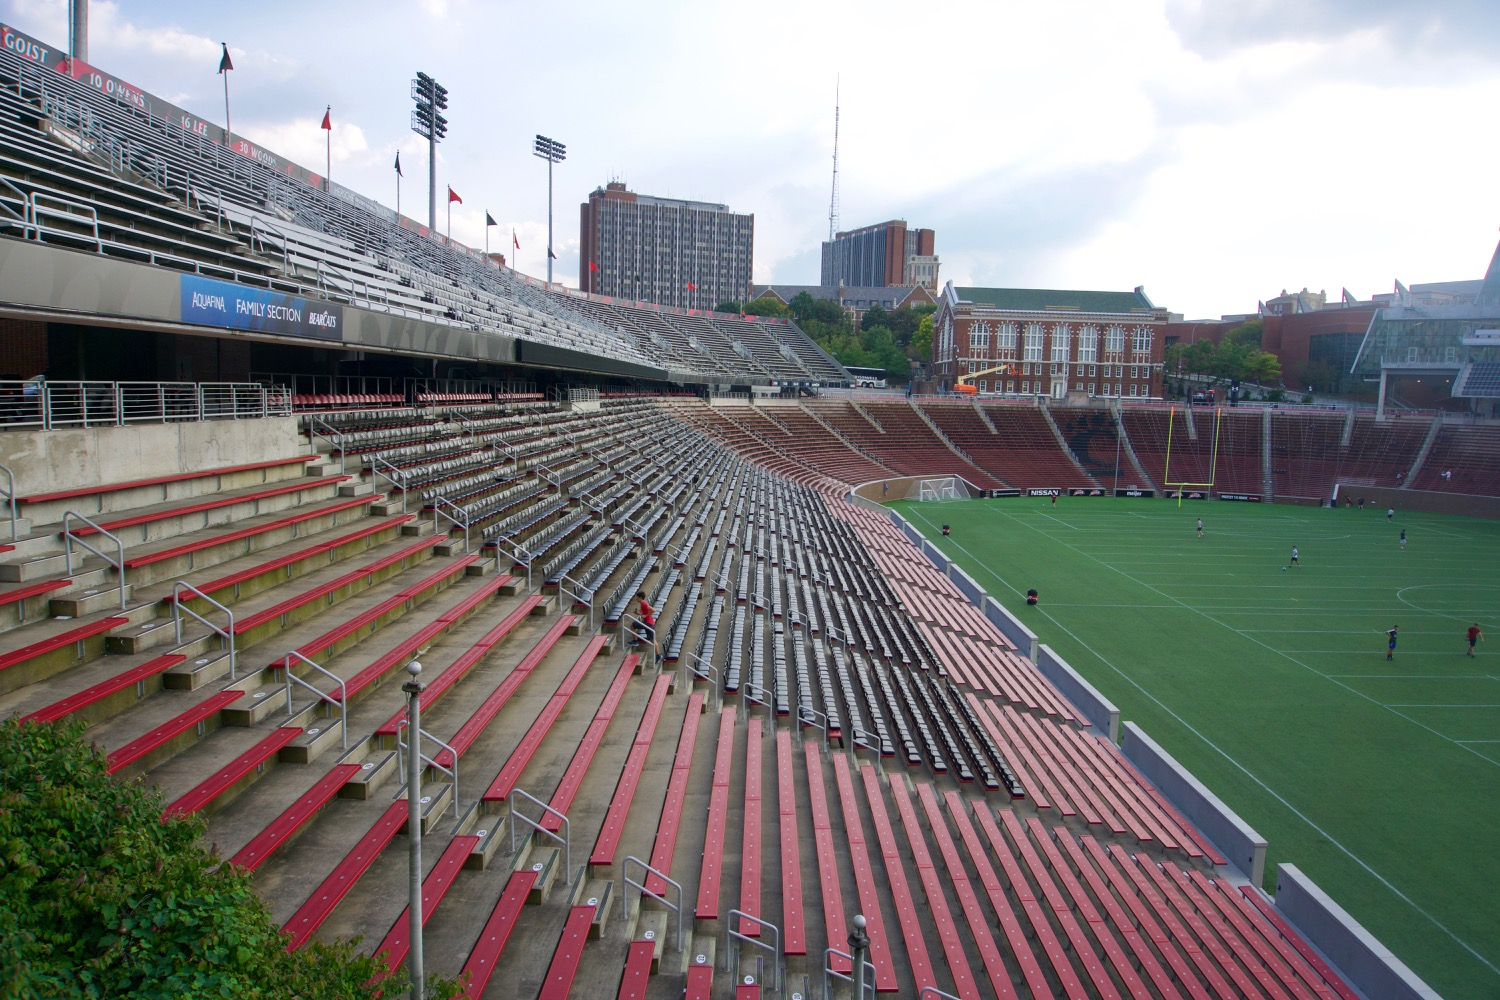 4. CONT'D: The stadium that would become Nippert was built around Carson Field as a necessity. The original pine benches that surrounded the field were apparently quite painful. So painful that spectators chose to stand around the brim rather than sitting on them, leaving one reporter to remark that during games there were more fans outside the stadium than in it. In 1916 funds were raised to replace the benches with concrete. Progress proceeded haltingly until Nippert Stadium was completed and christened in 1924, thanks to James Gamble. / Image: Brian Planalp // Published: 10.21.17